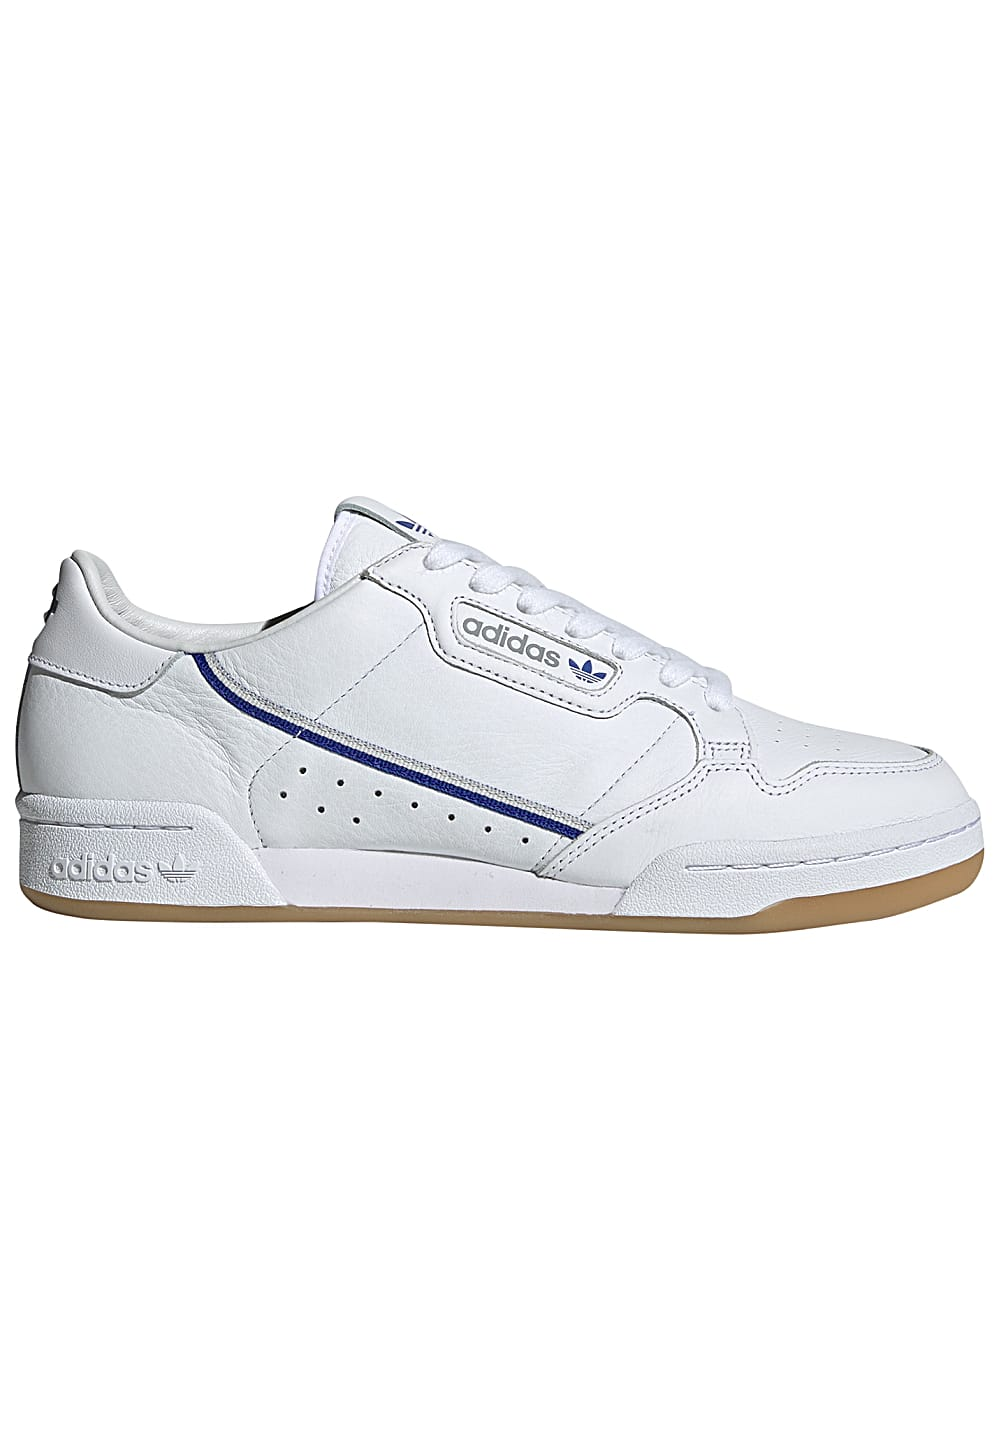 ADIDAS ORIGINALS X TFL Continental 80 - Sneakers for Men - White